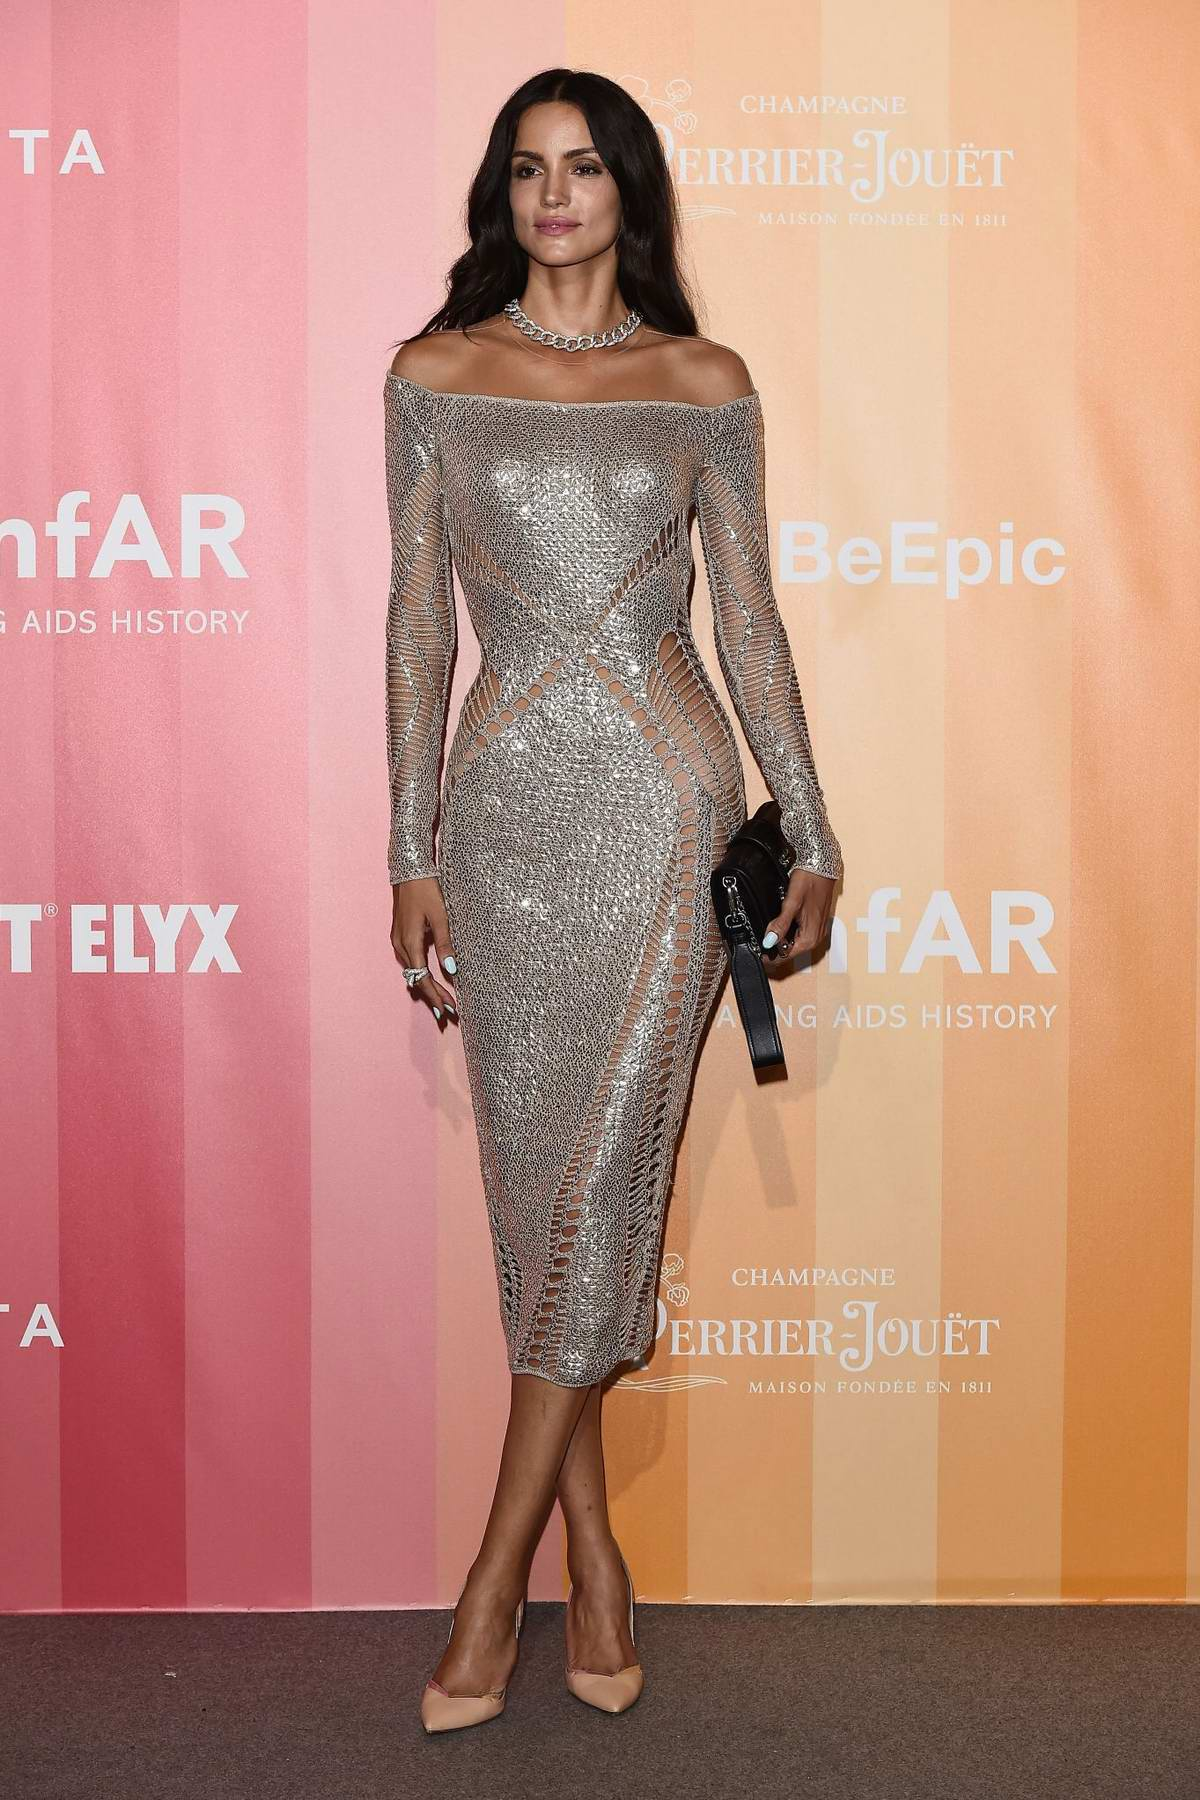 Sofia Resing attends amfAR Gala at La Permanente in Milan, Italy